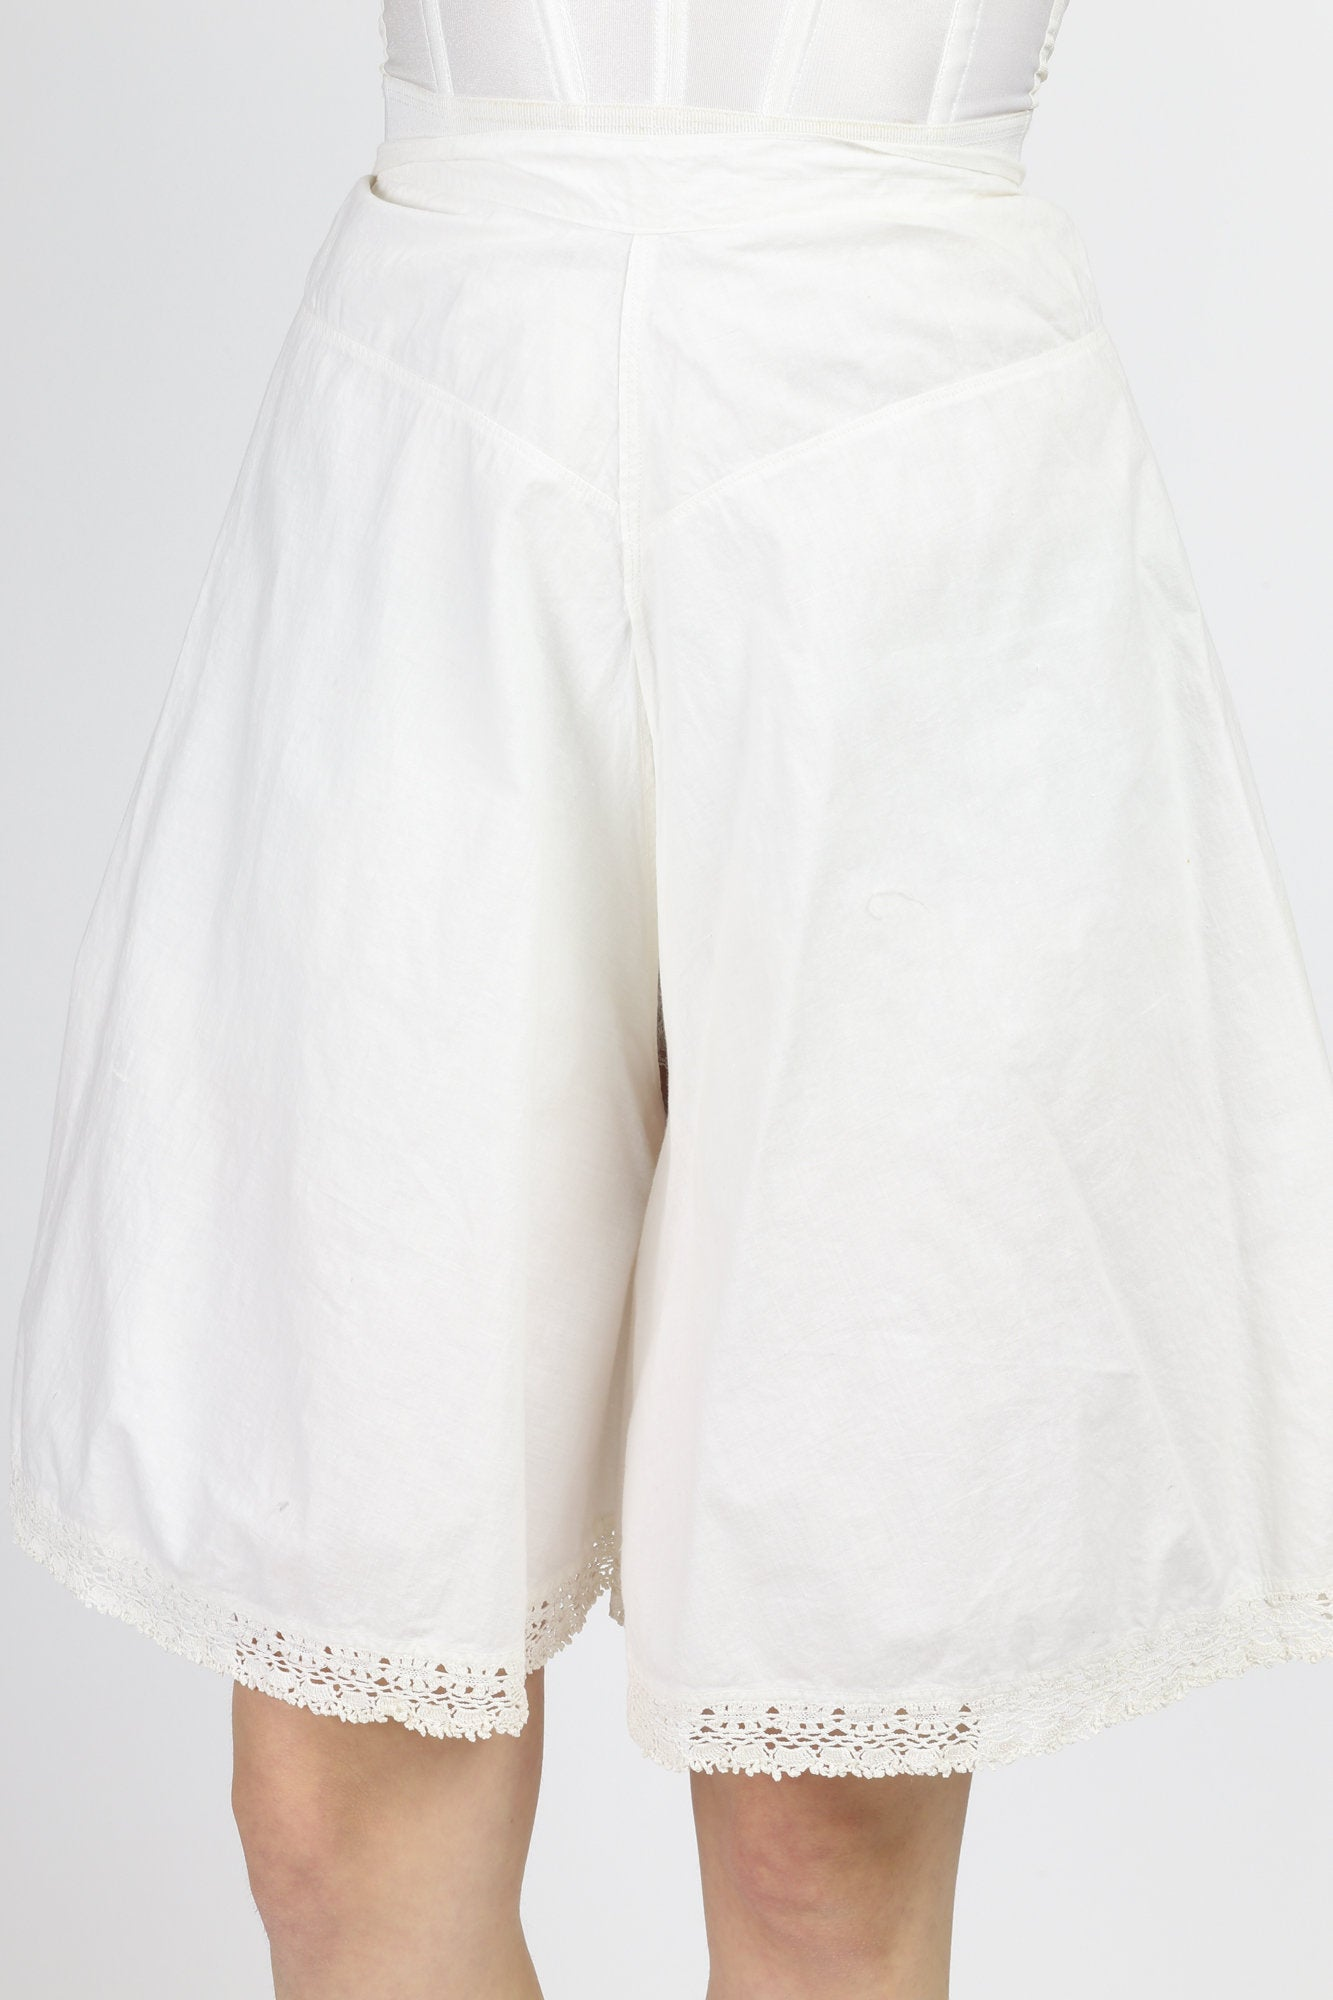 Antique Edwardian White Cotton Bloomers - Extra Small